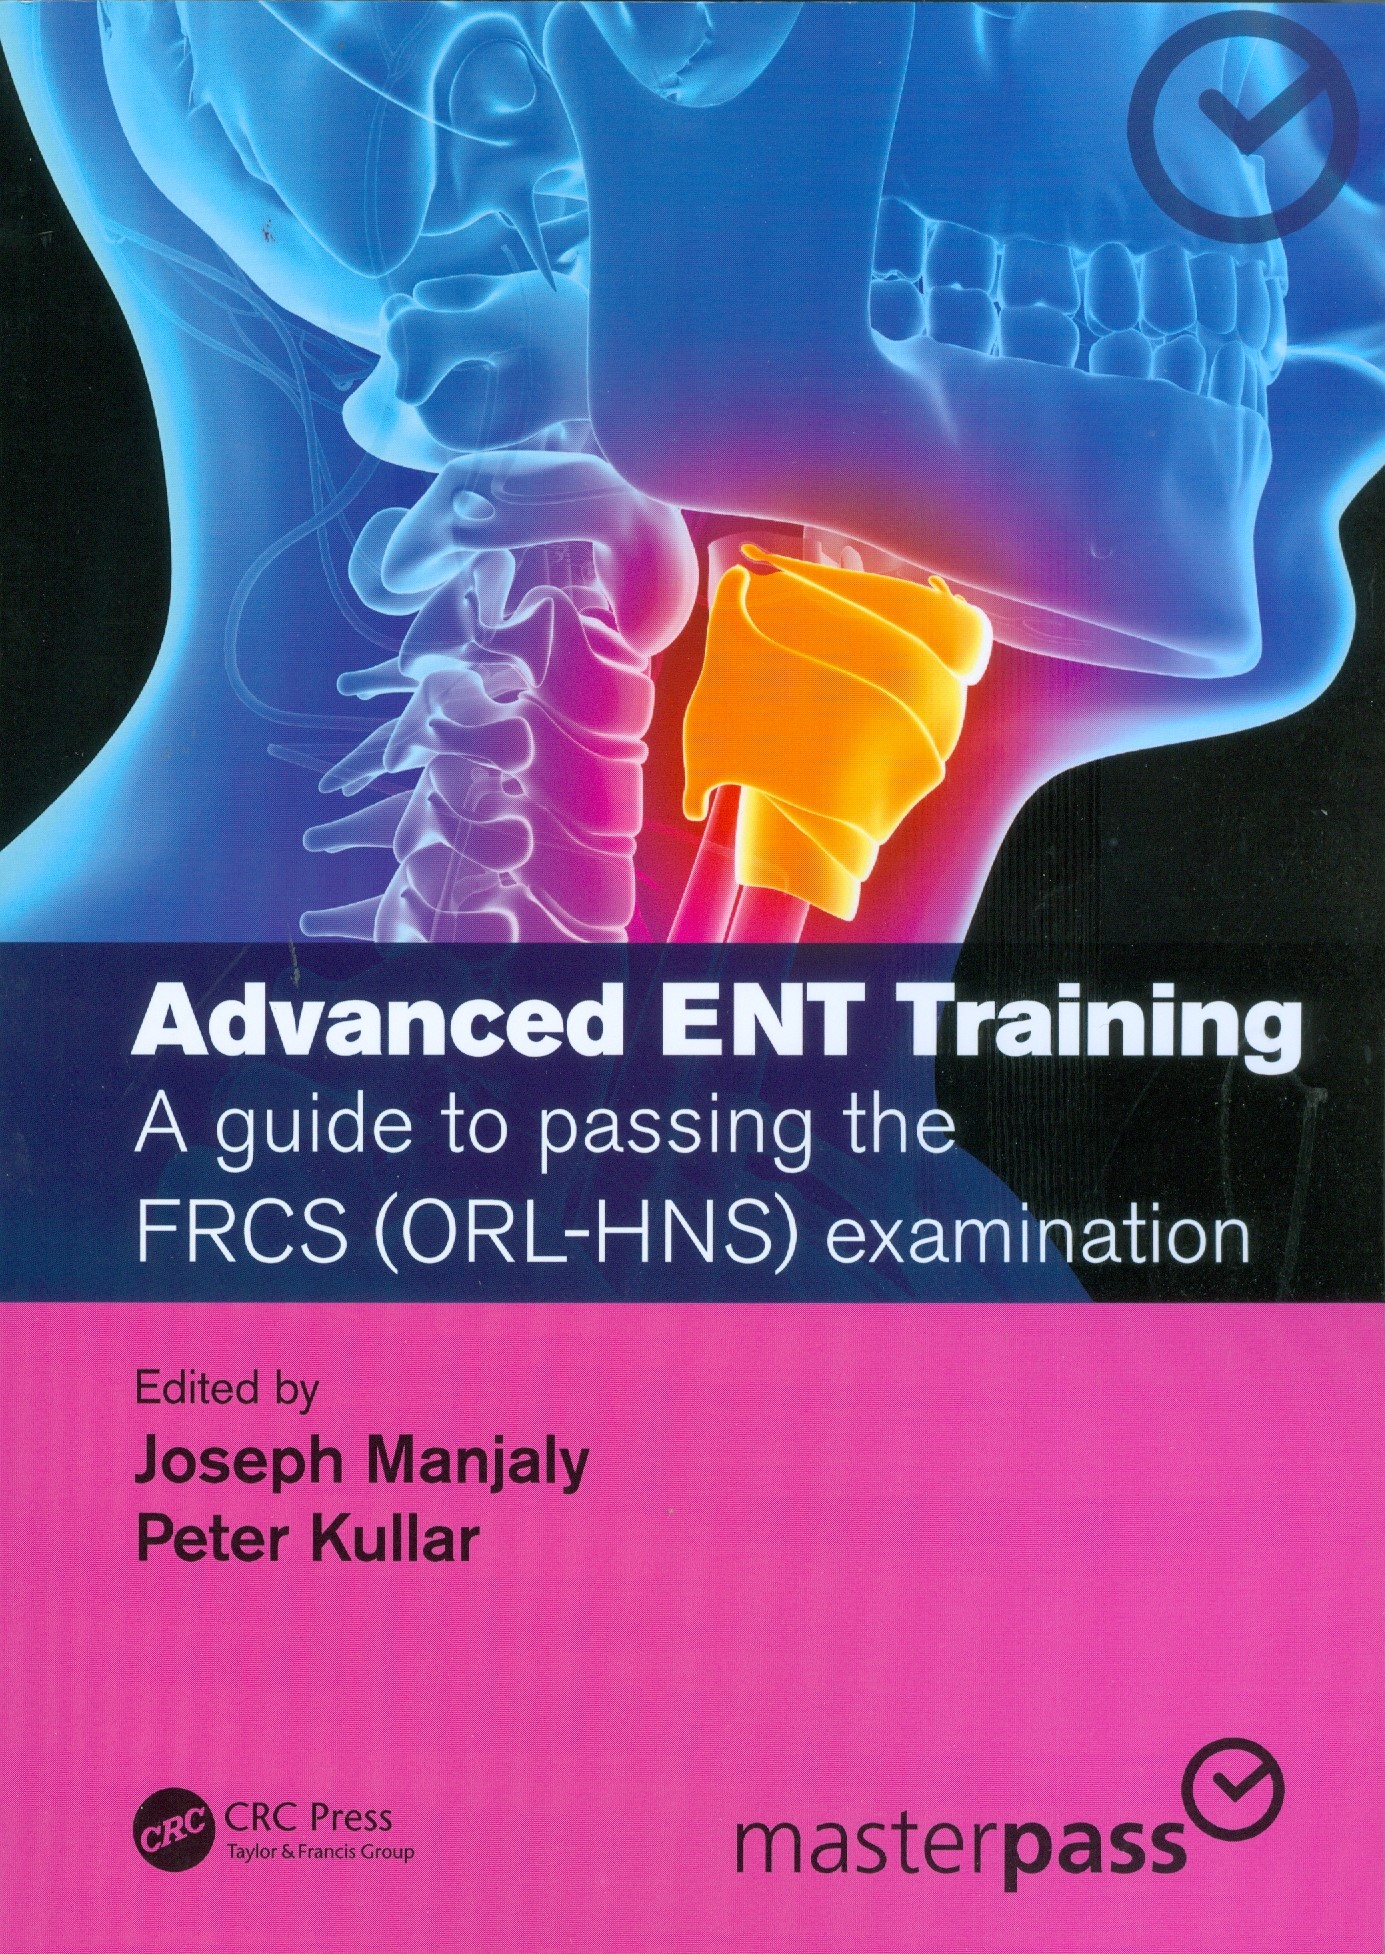 Advanced ENT Training: A Guide to Passing the FRCS (ORL-HNS) Examination